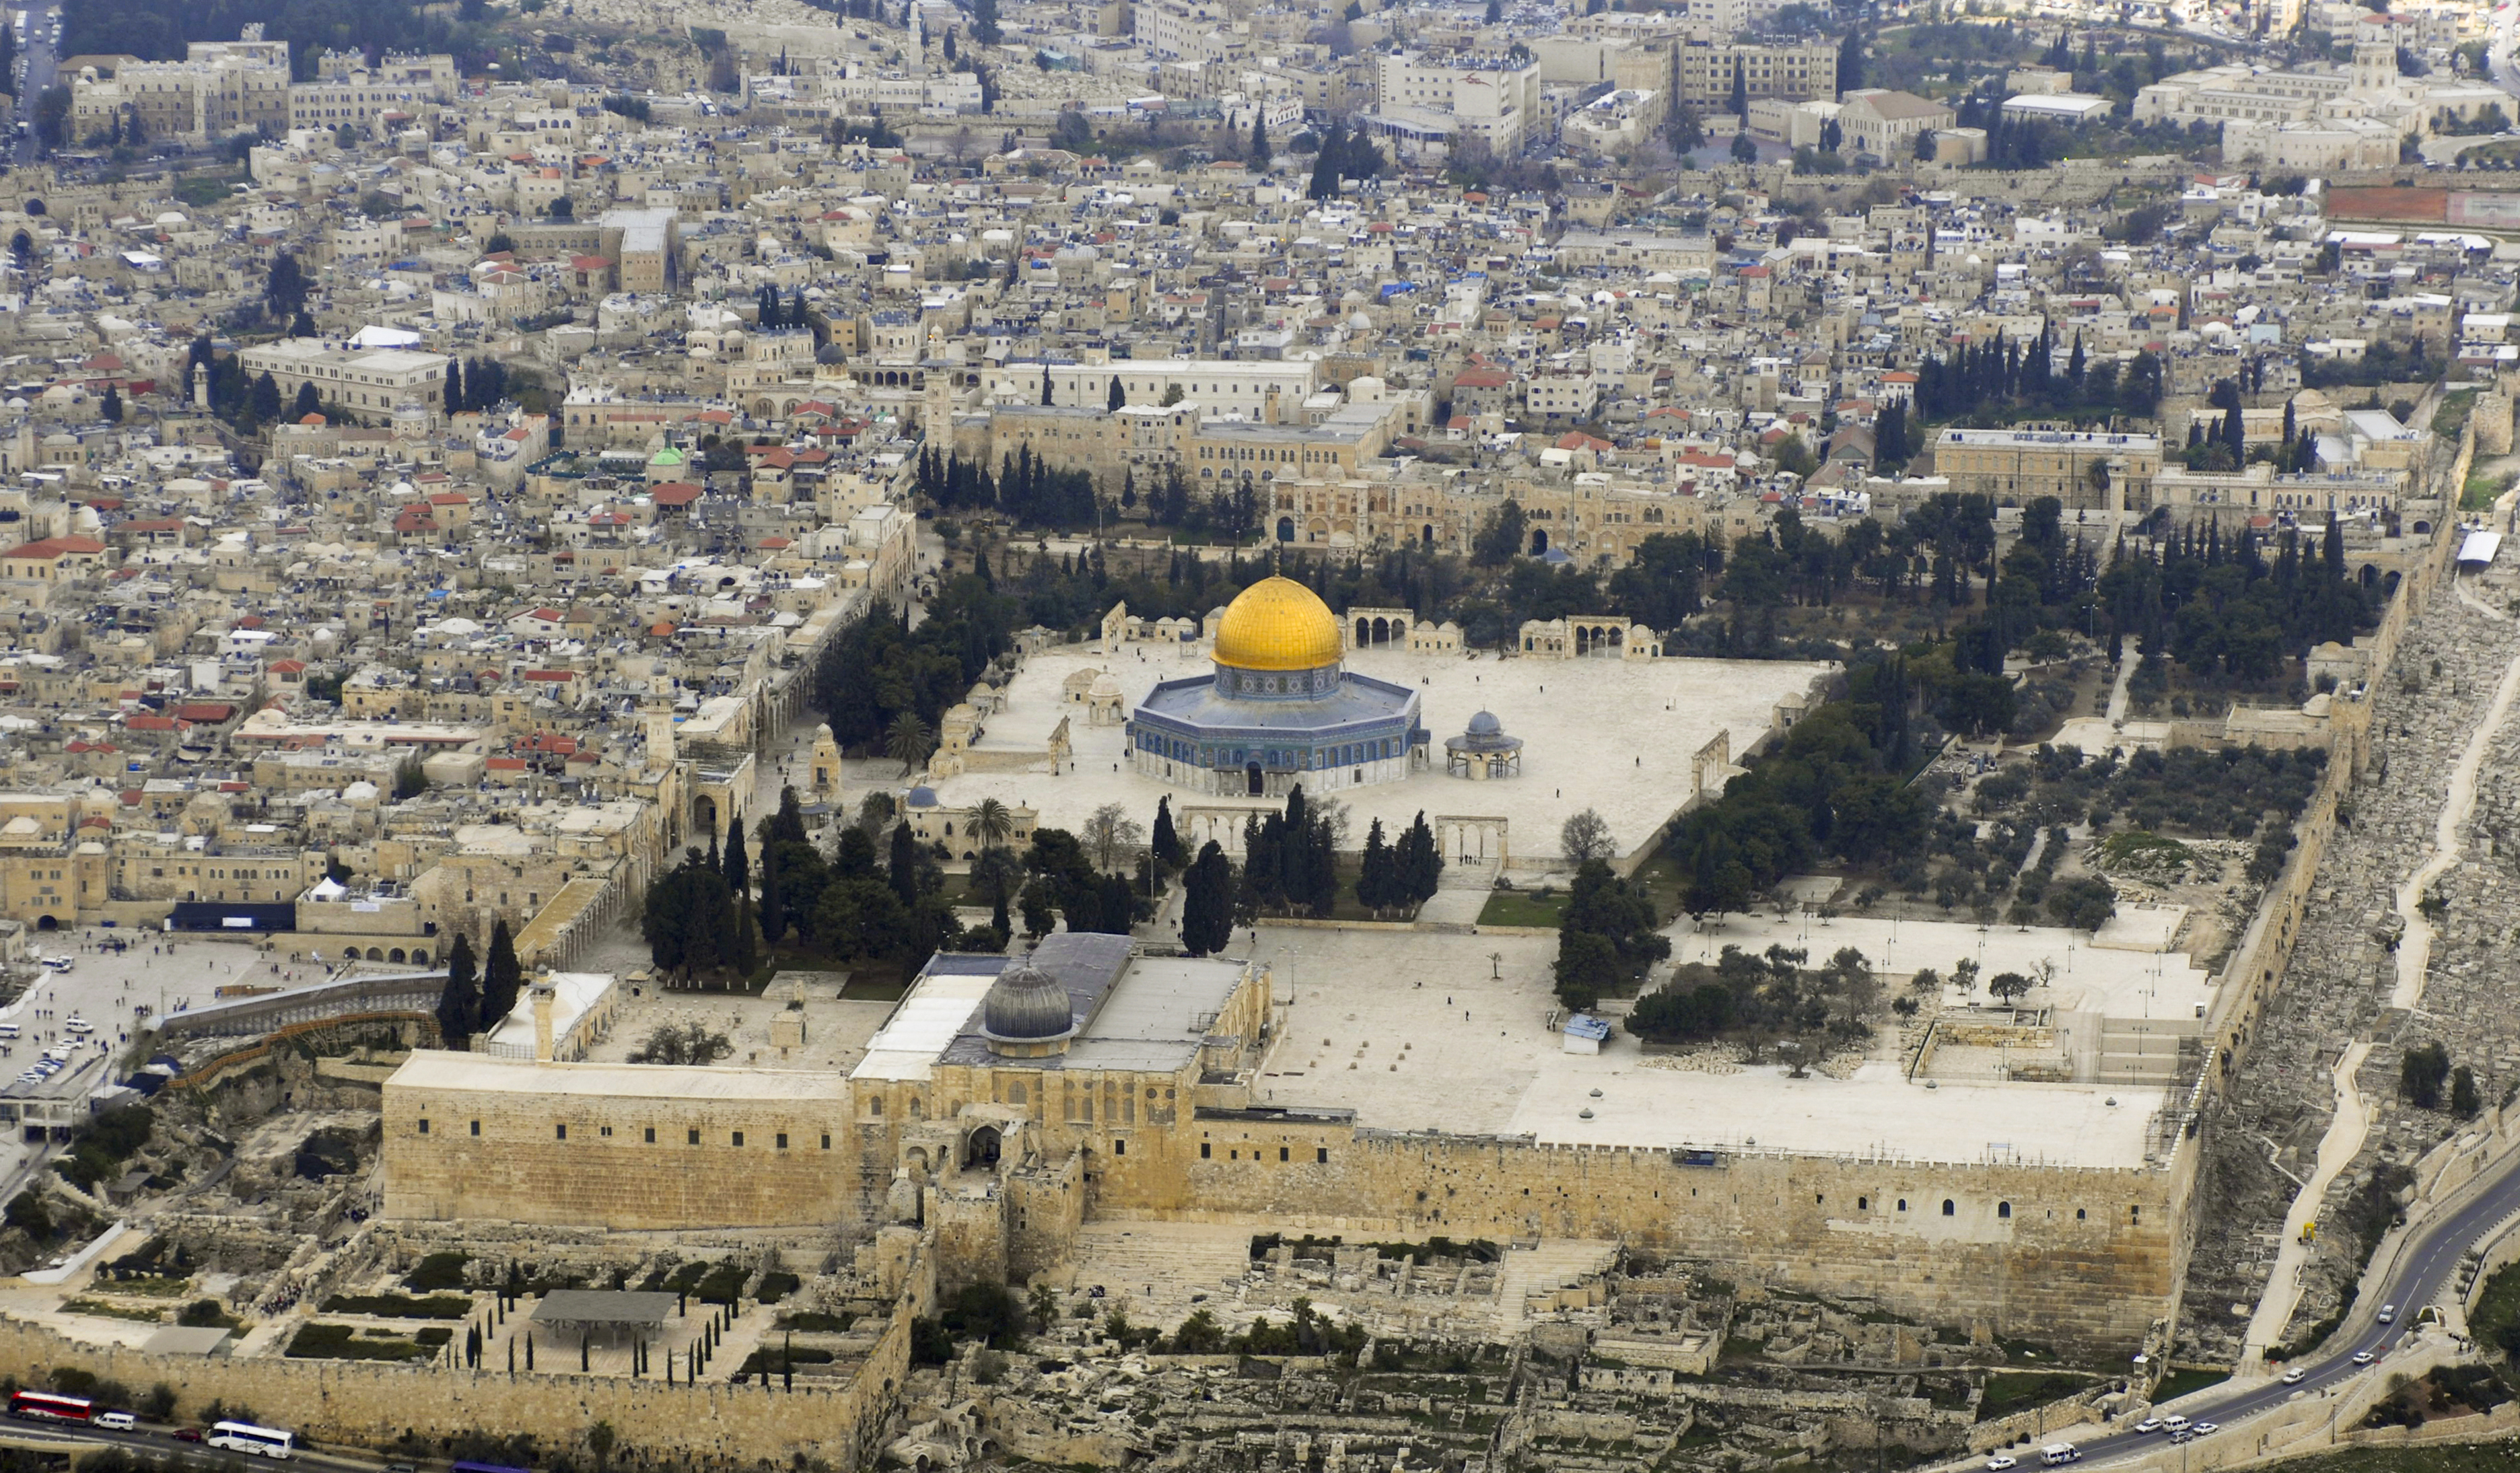 File:Temple Mount (Aerial view, 2007) 01.jpg - Wikimedia Commons